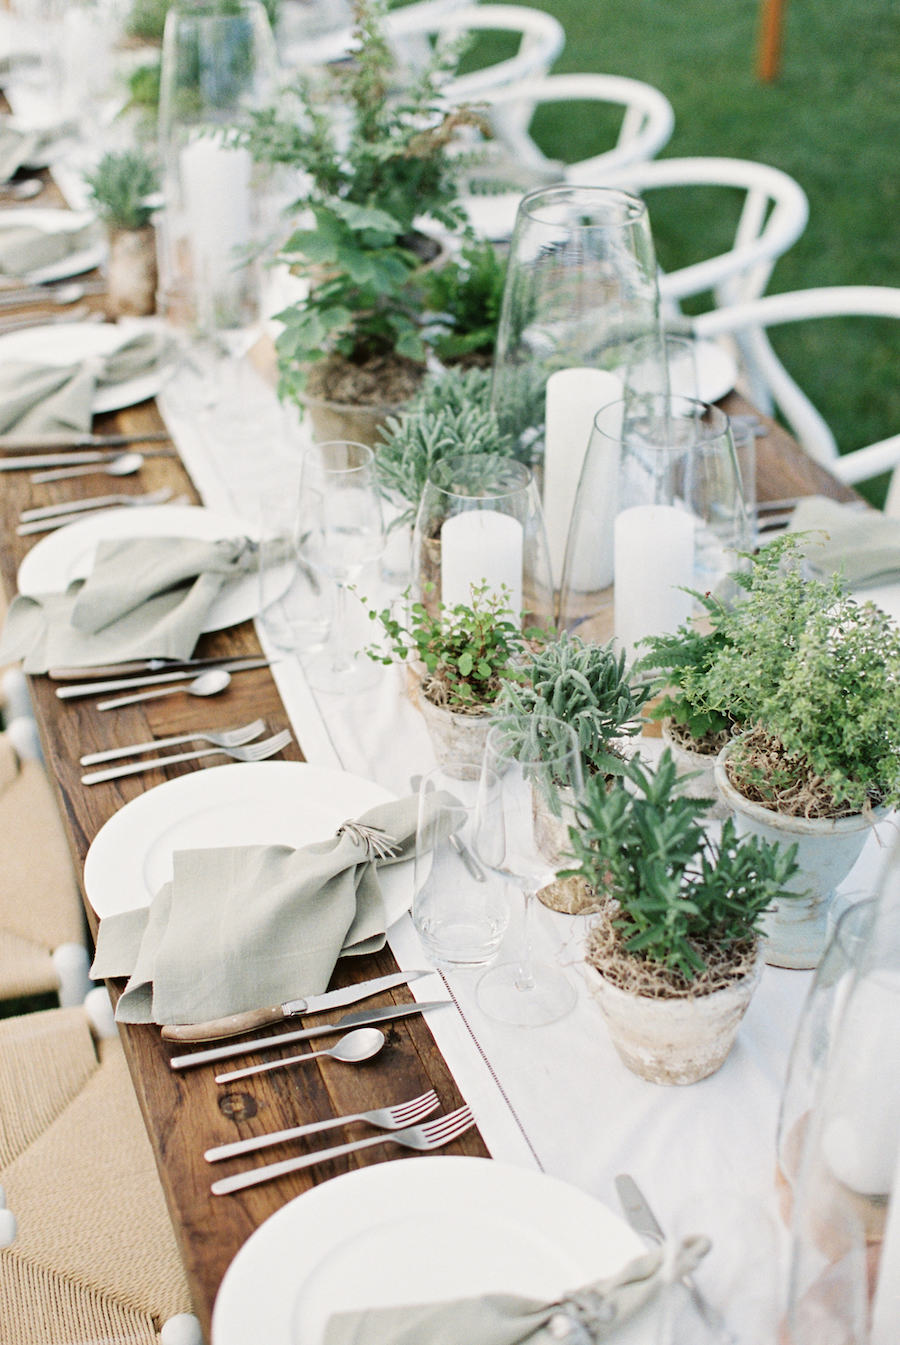 tabletop decor with green plants at wedding